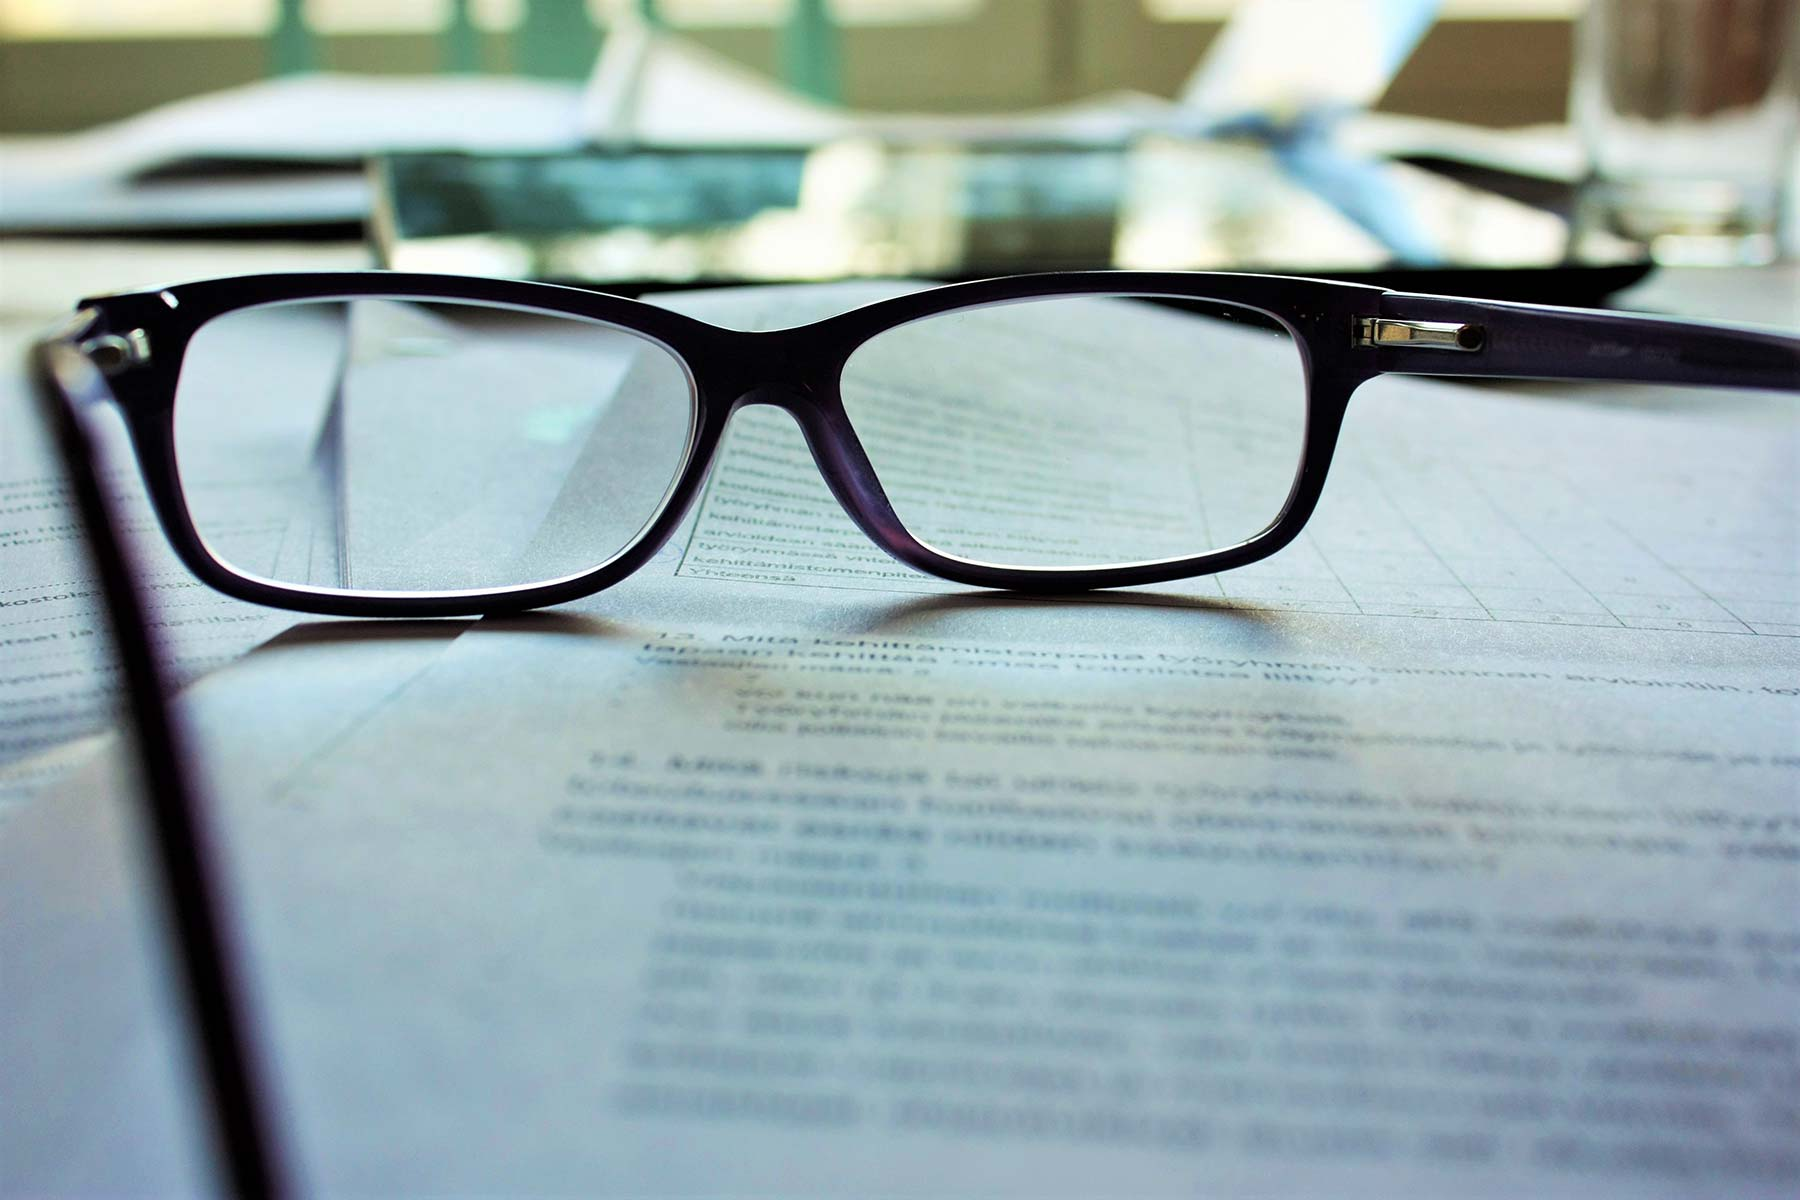 image of freelancer's glasses on table